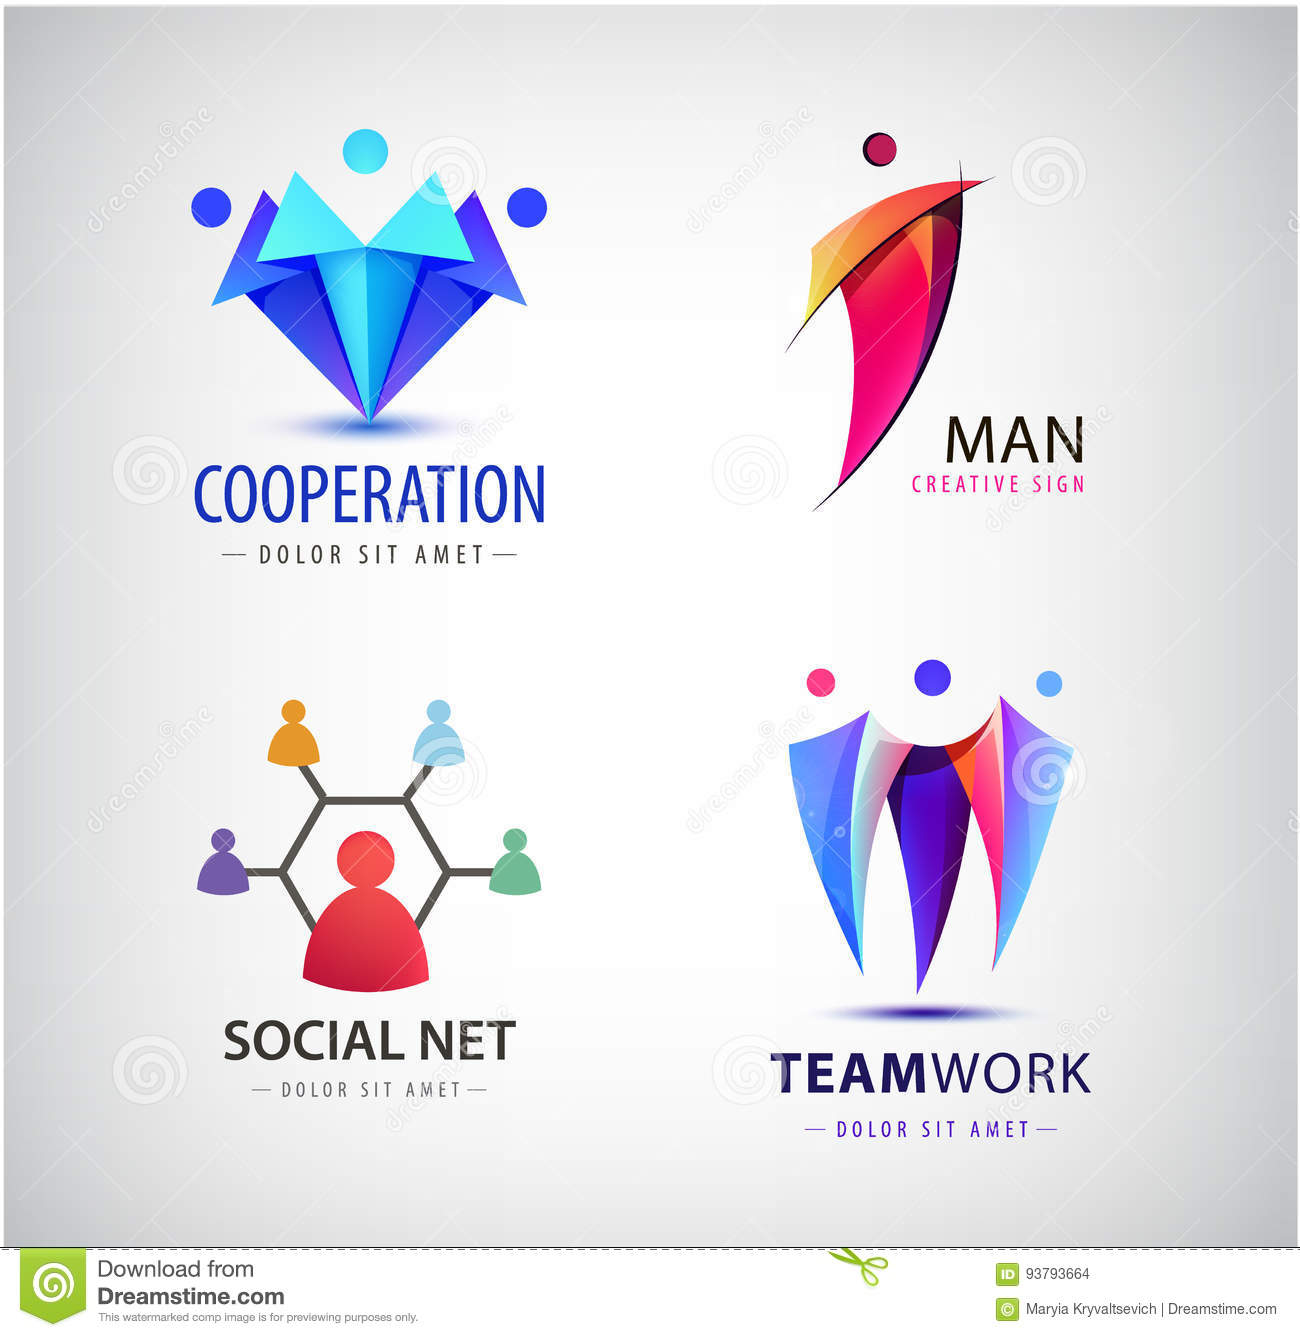 hight resolution of vector men group logo human family teamwork social net leader icon community people sign in modern style colorful 3 person